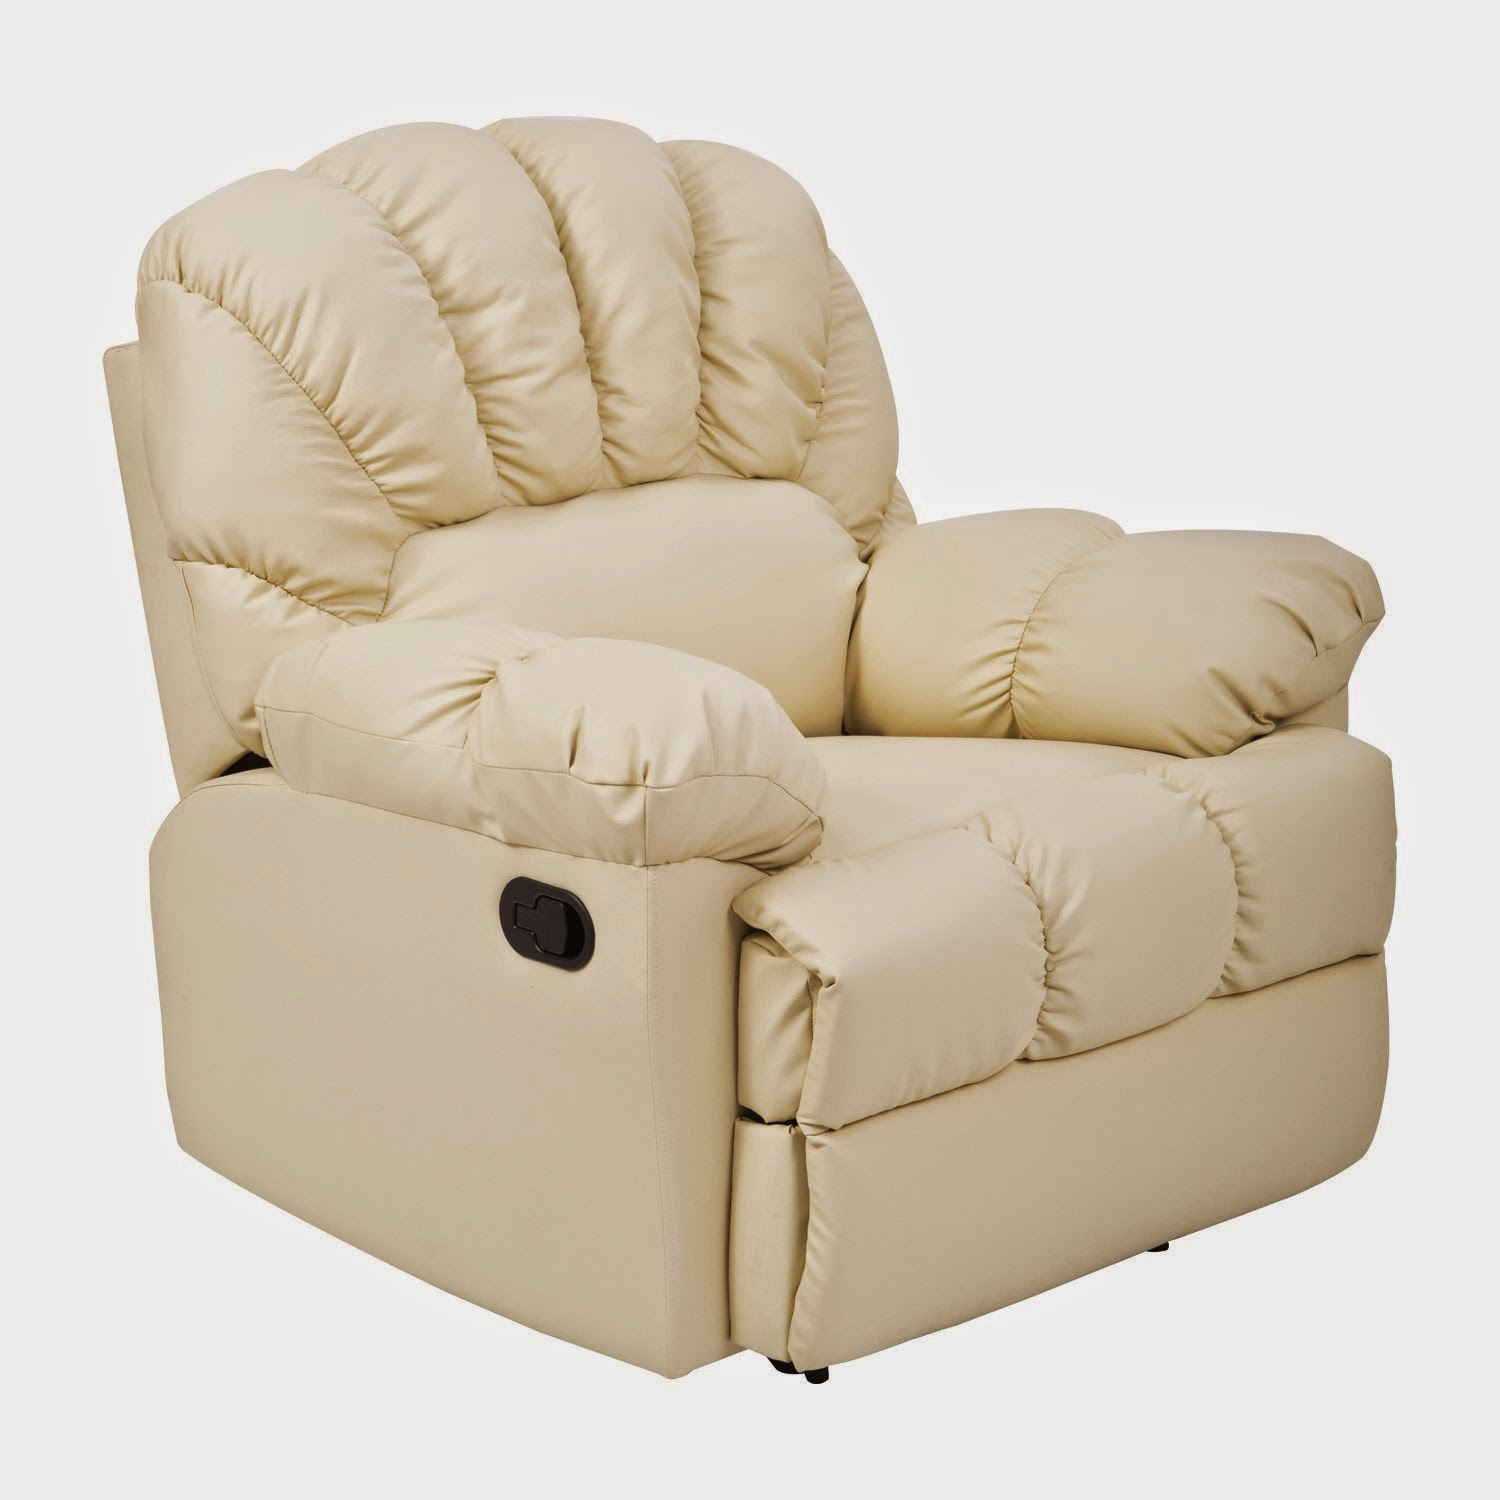 Cheap Sofas On Sale: Cheap Reclining Sofas Sale: Cream Leather Recliner Corner Sofa